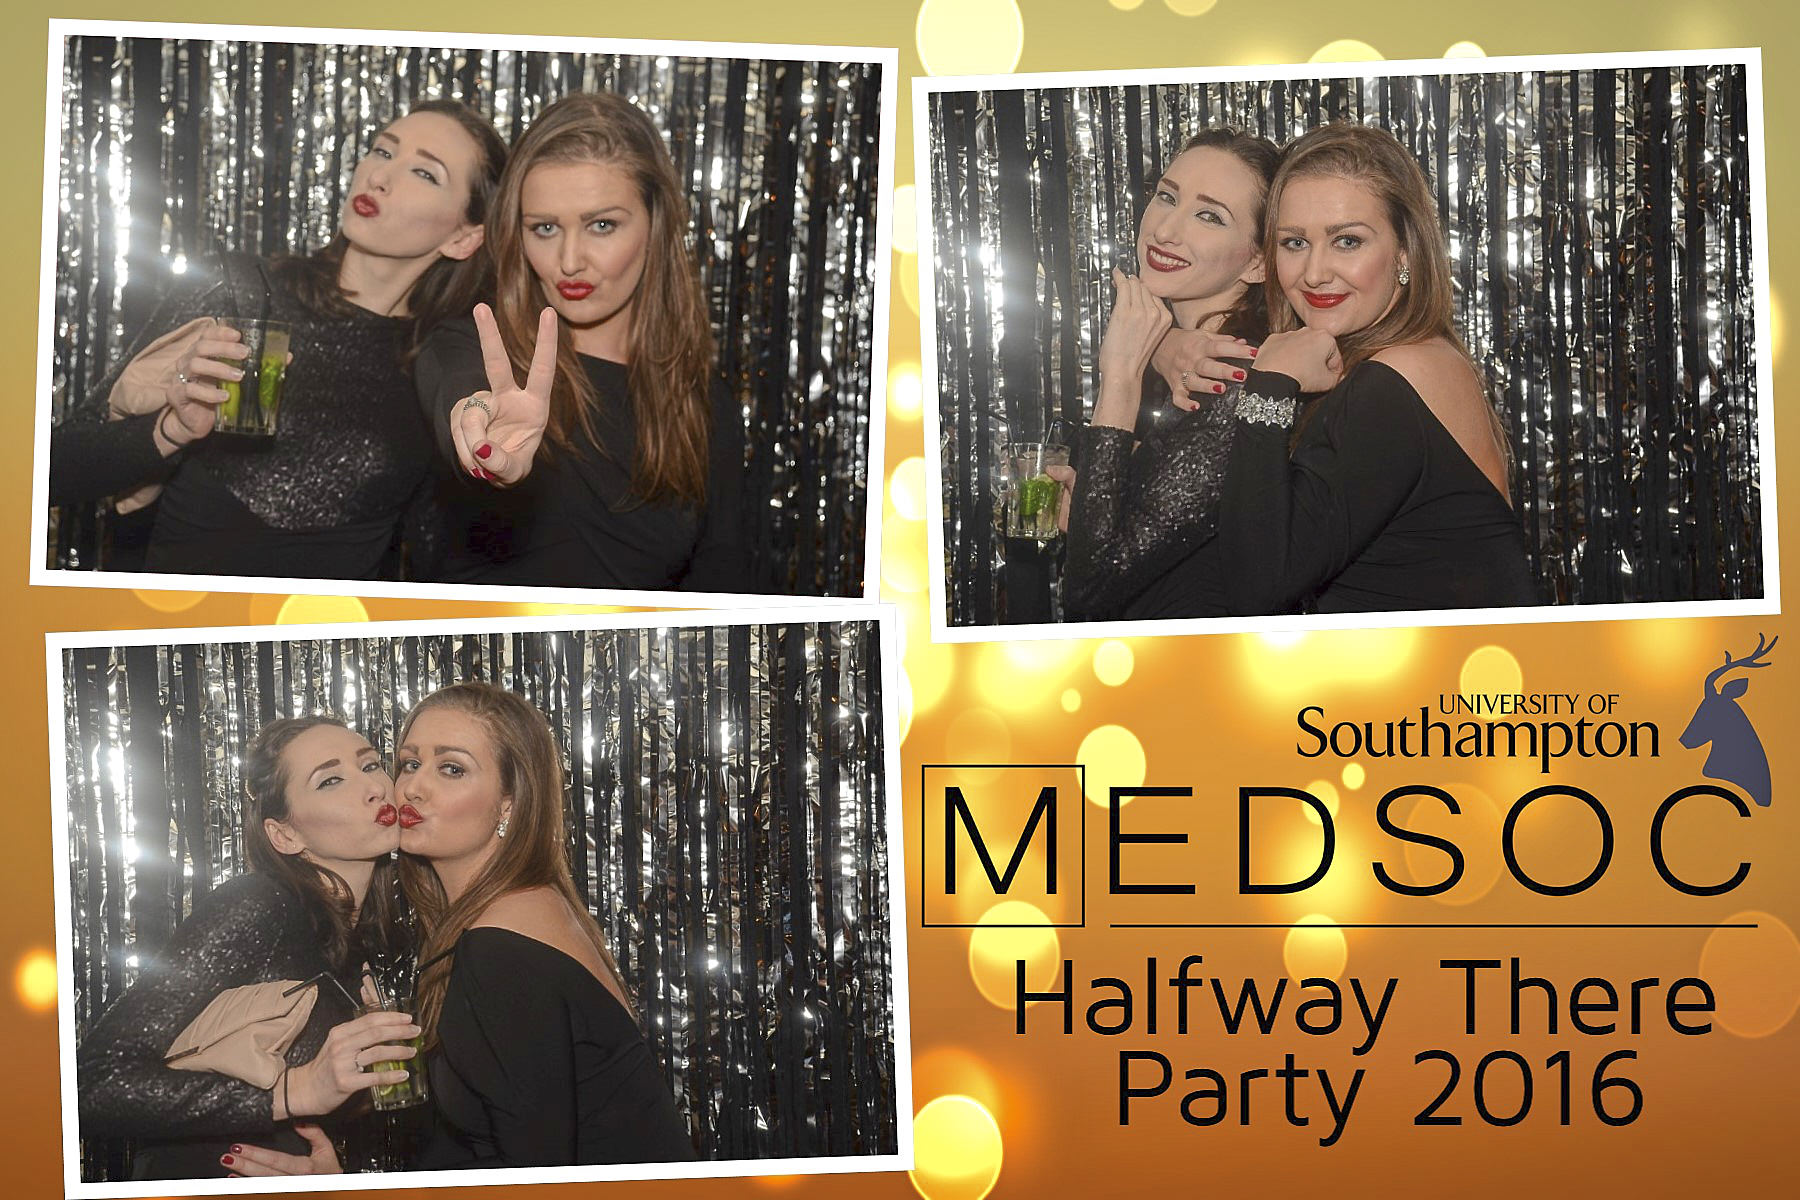 MedSoc Halfway There Party 2016 DS224634.jpg